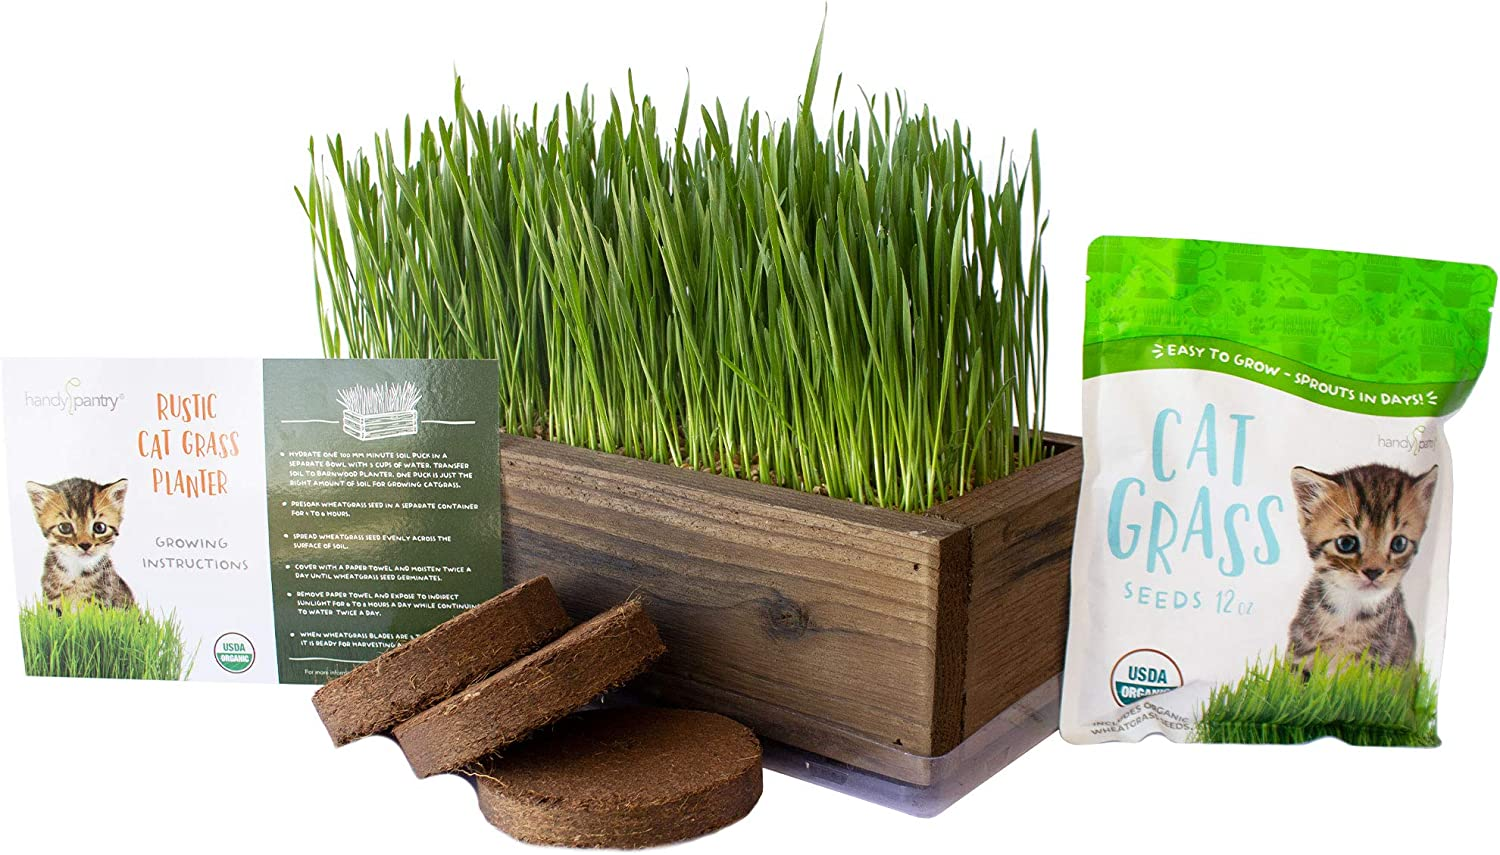 Organic Cat Grass Seeds Kit - Decorative Reclaimed Barnwood Style Organic Wheatgrass Seeds Planter - Rich Brown - Hairball Remedy for Cats, Healthy Pet Grass Supplement & Wheatgrass Growing Kit